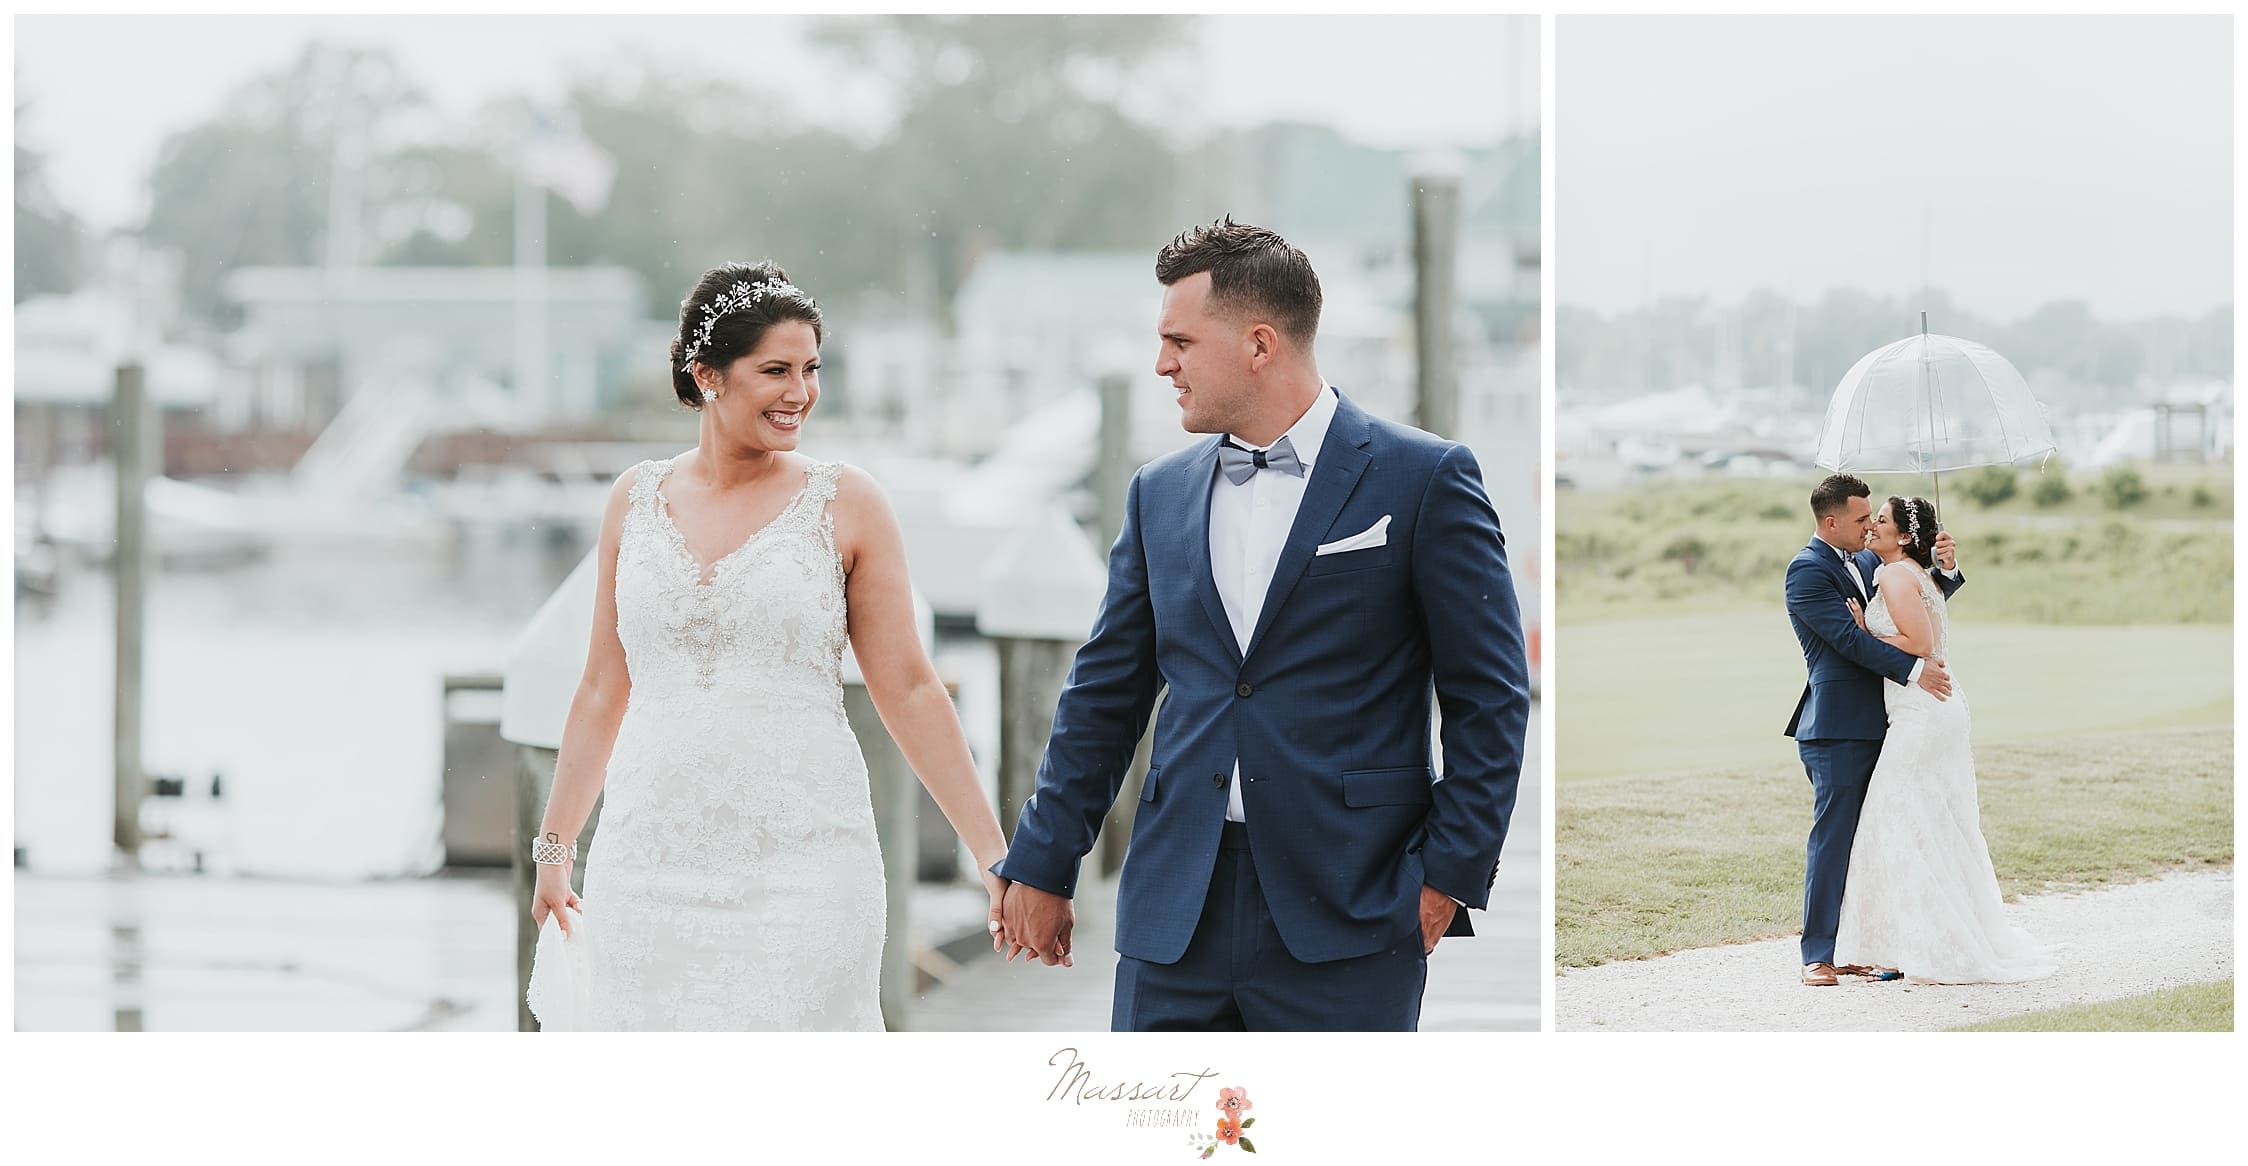 Rainy summer wedding day portraits photographed by CT wedding photographers Massart Photography who offer maternity, newborn, family and baby sessions.